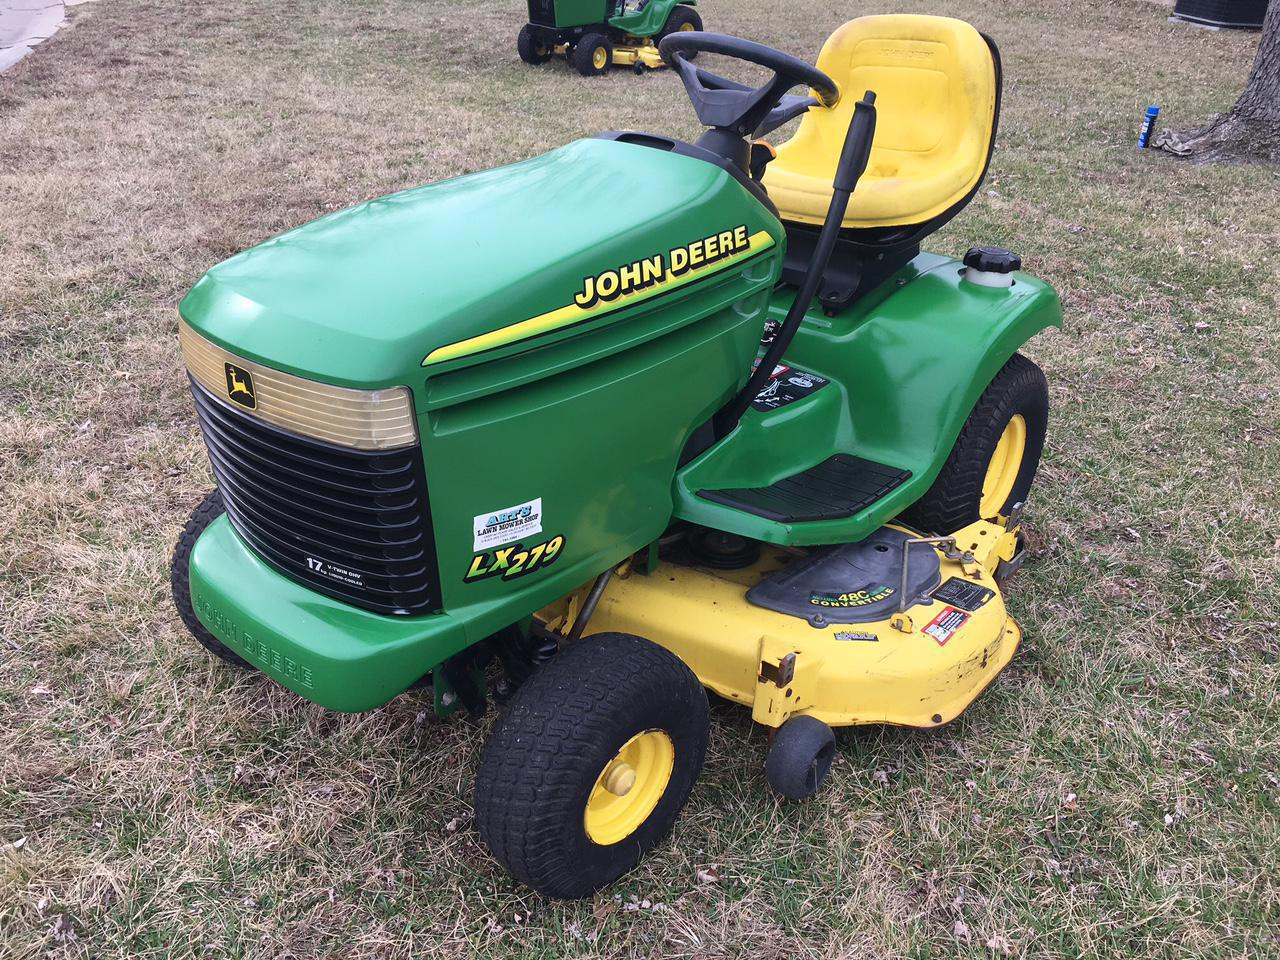 hight resolution of 2001 john deere lx279 for sale in florissant mo art u0027s lawn mower lx279